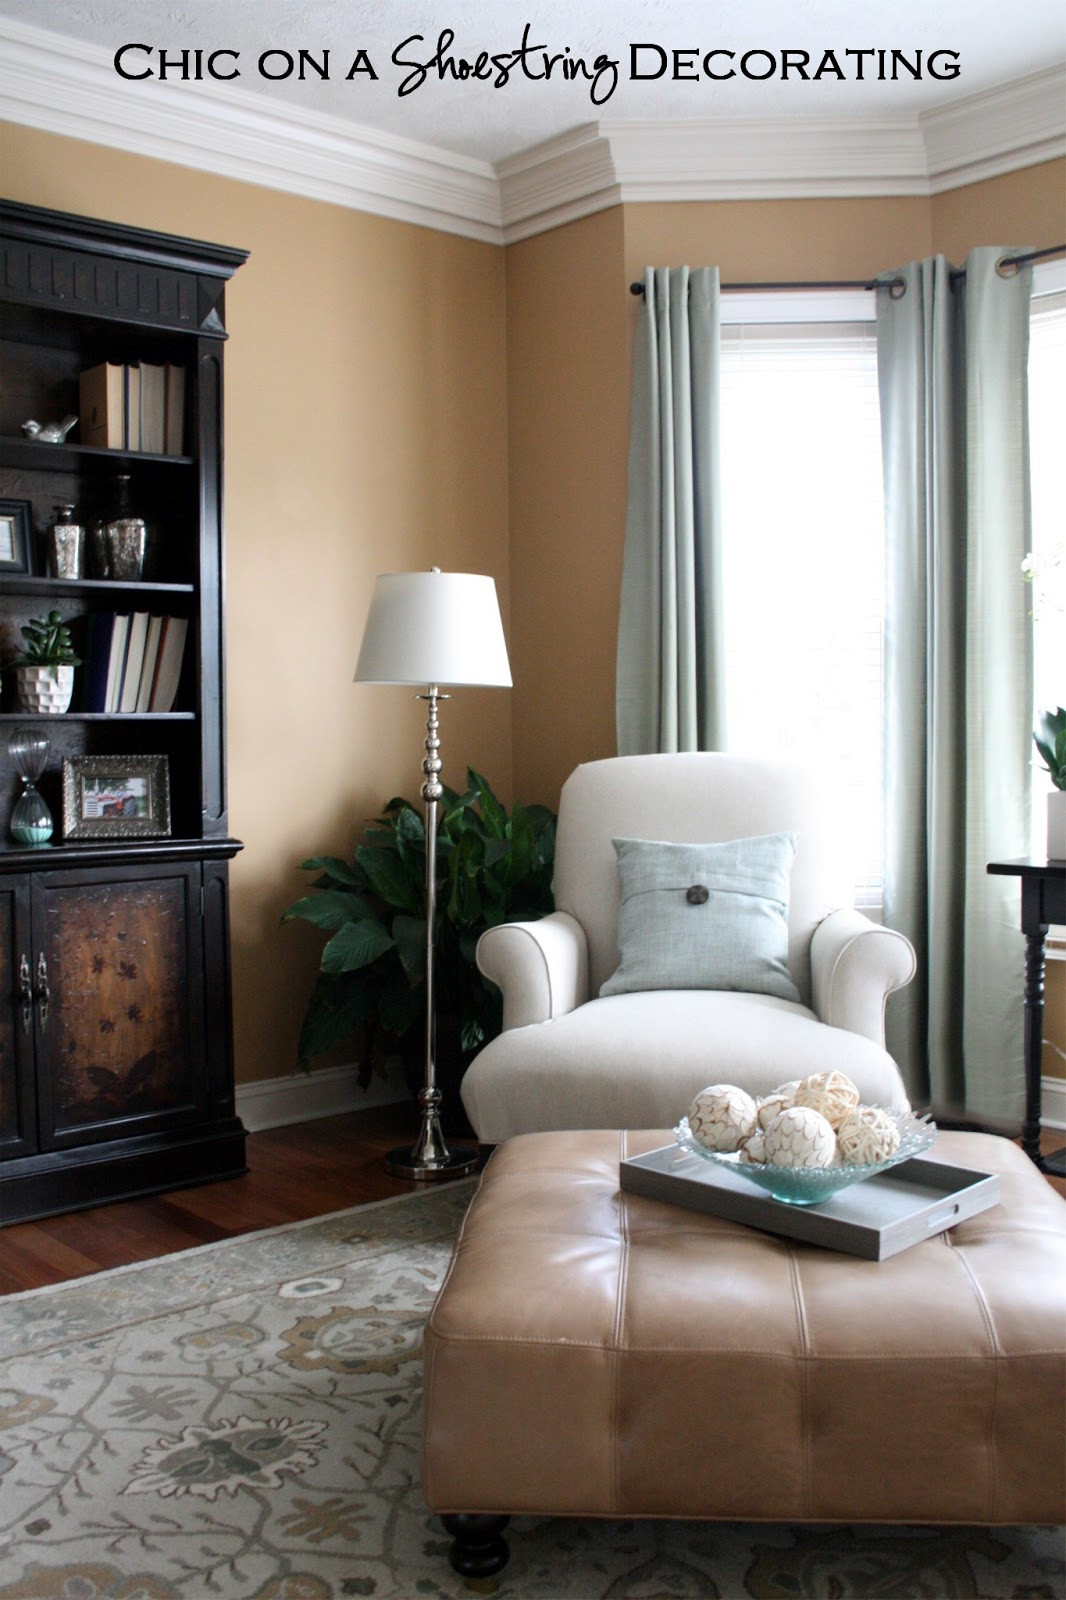 Best ideas about Decorating A Living Room . Save or Pin Chic on a Shoestring Decorating Grand Piano Living Room Now.